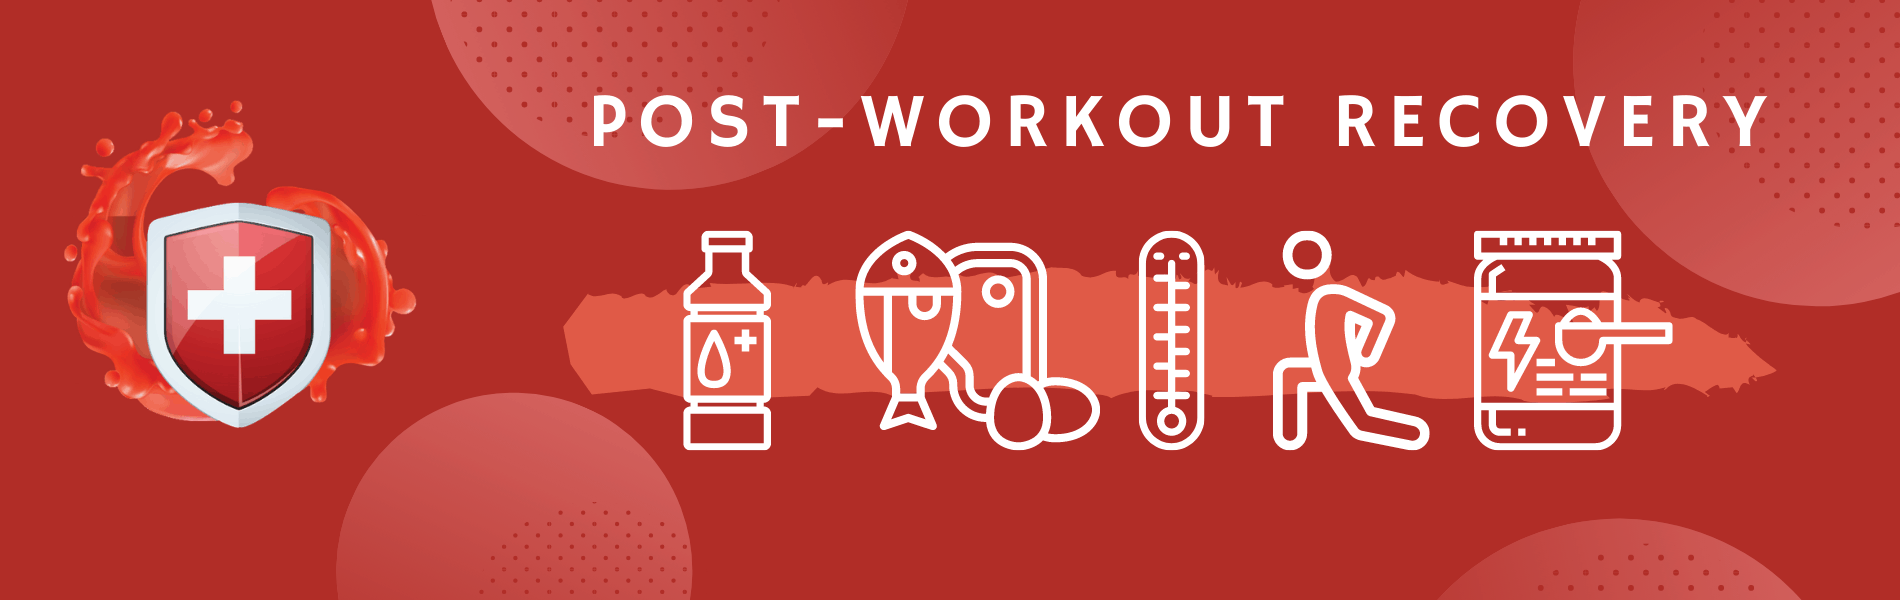 Post Workout Tips Get Maximum Recovery